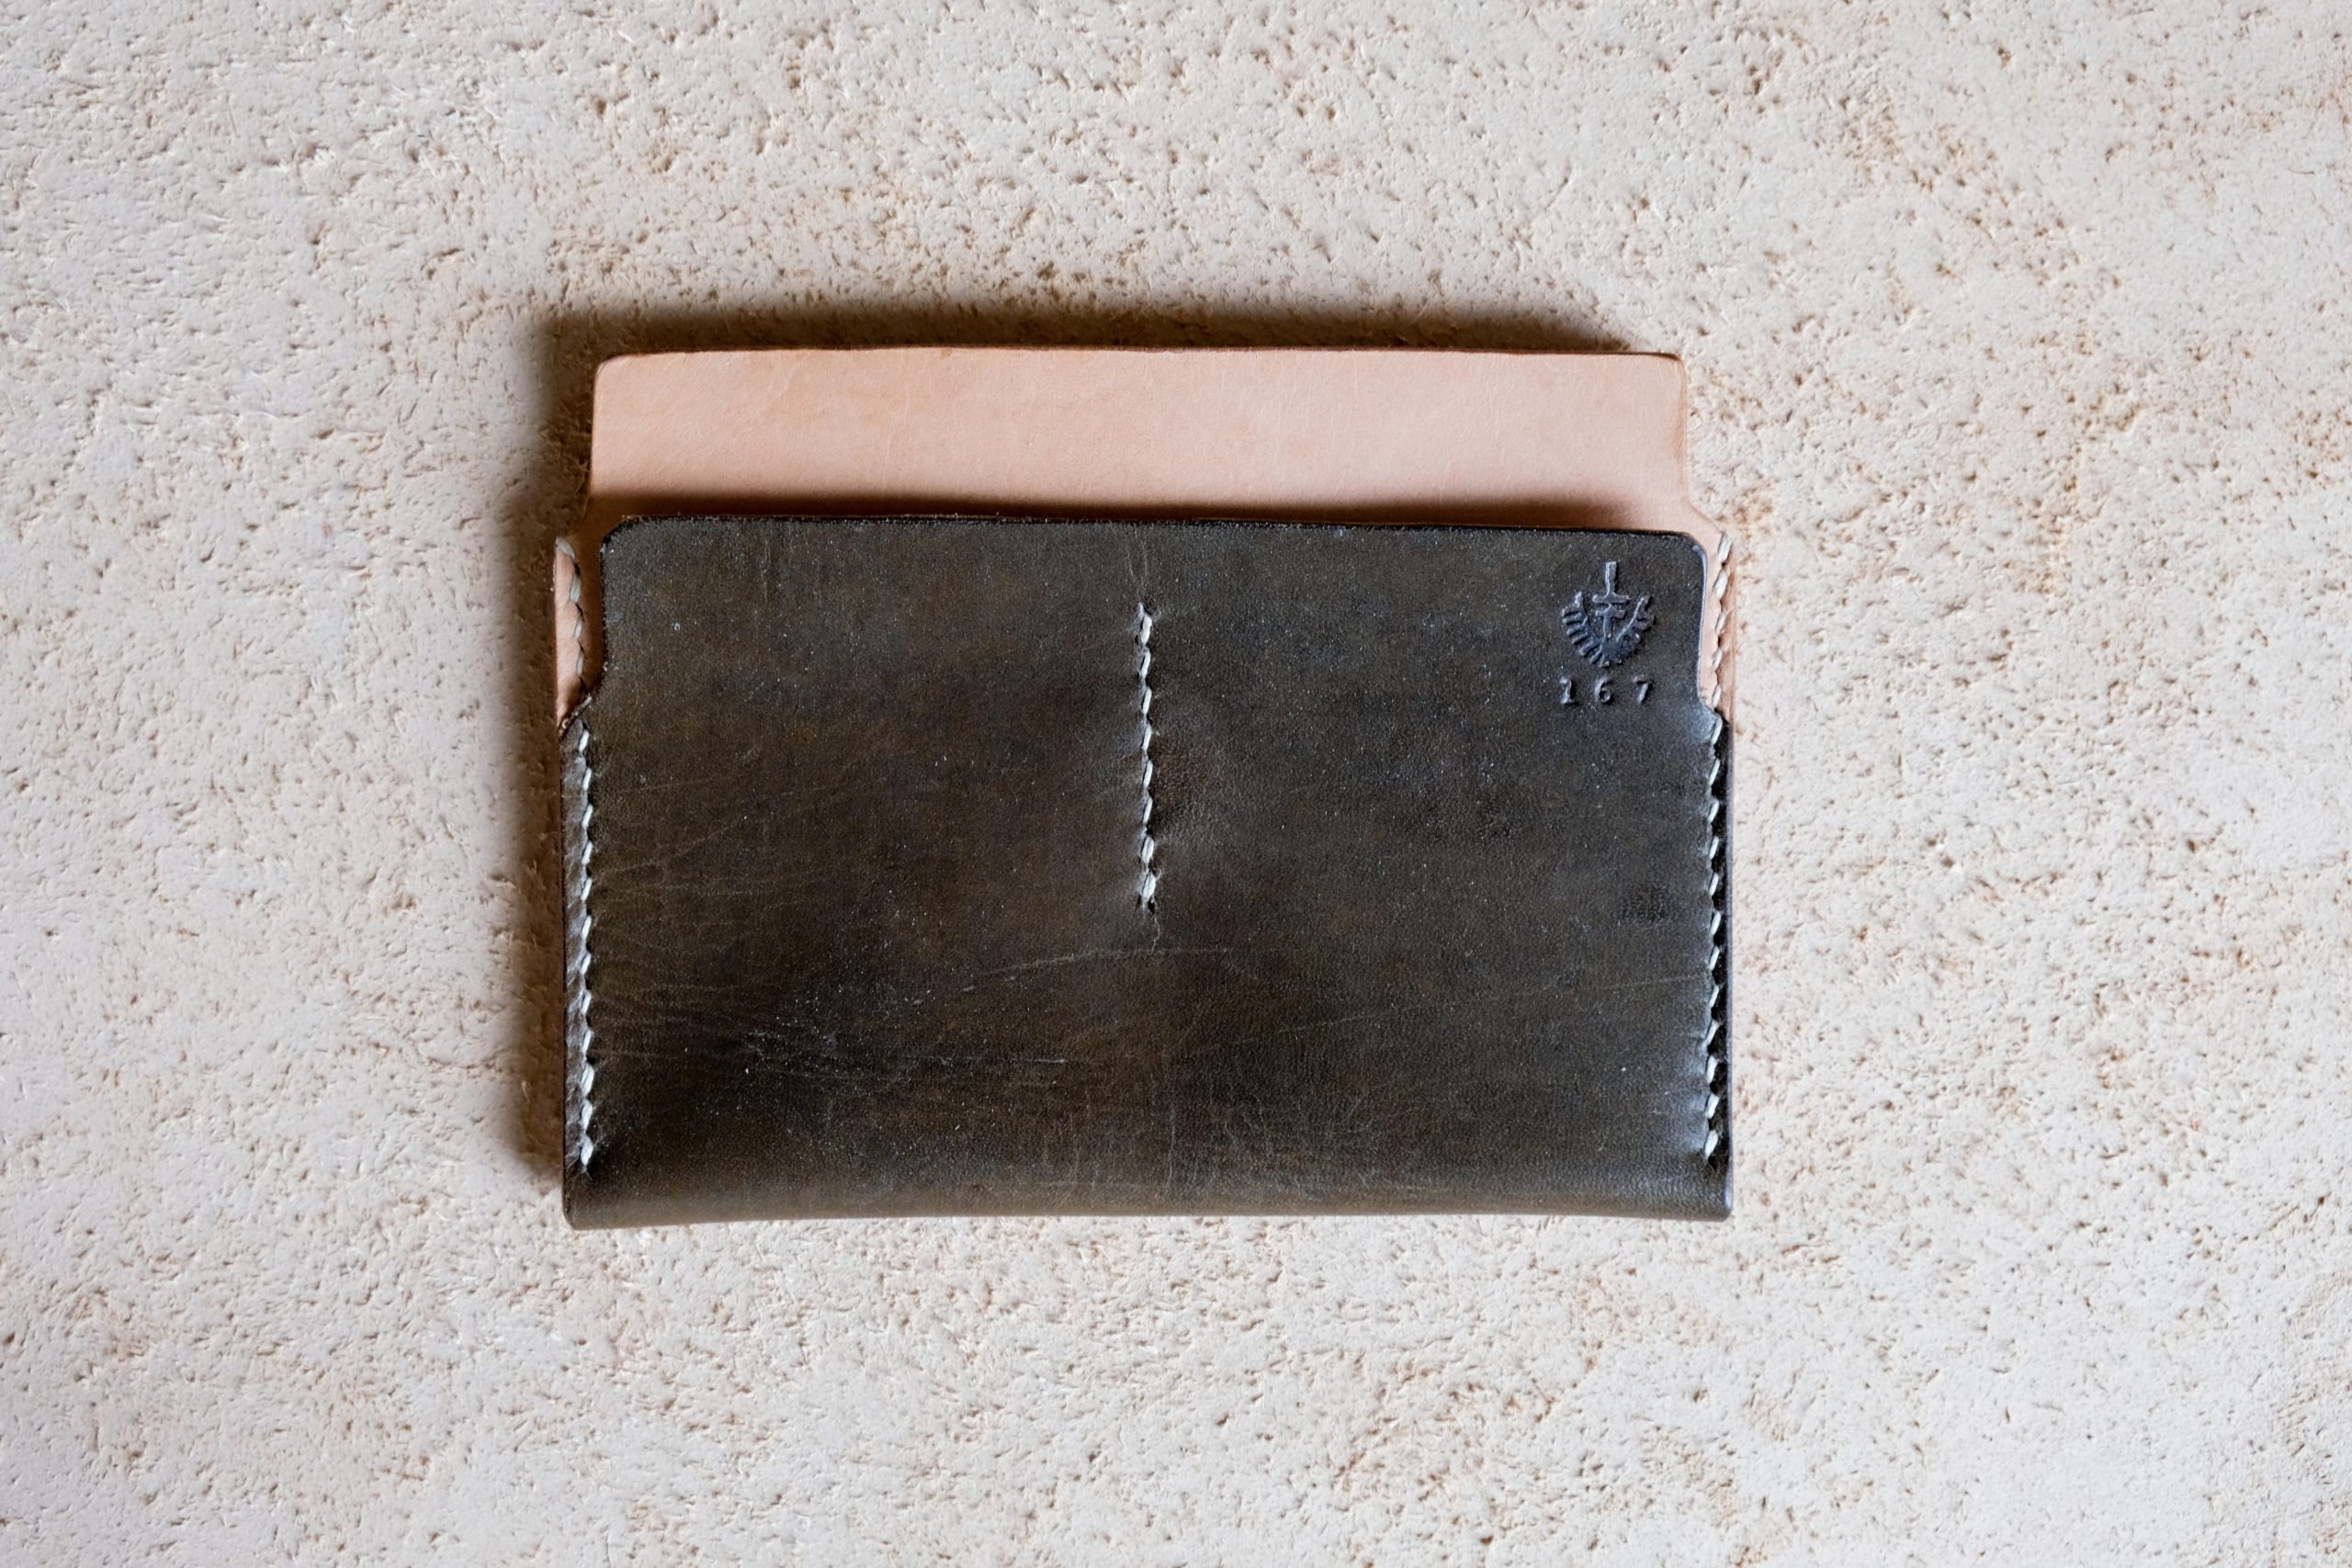 lerif designs sandwich leather wallet on beige background